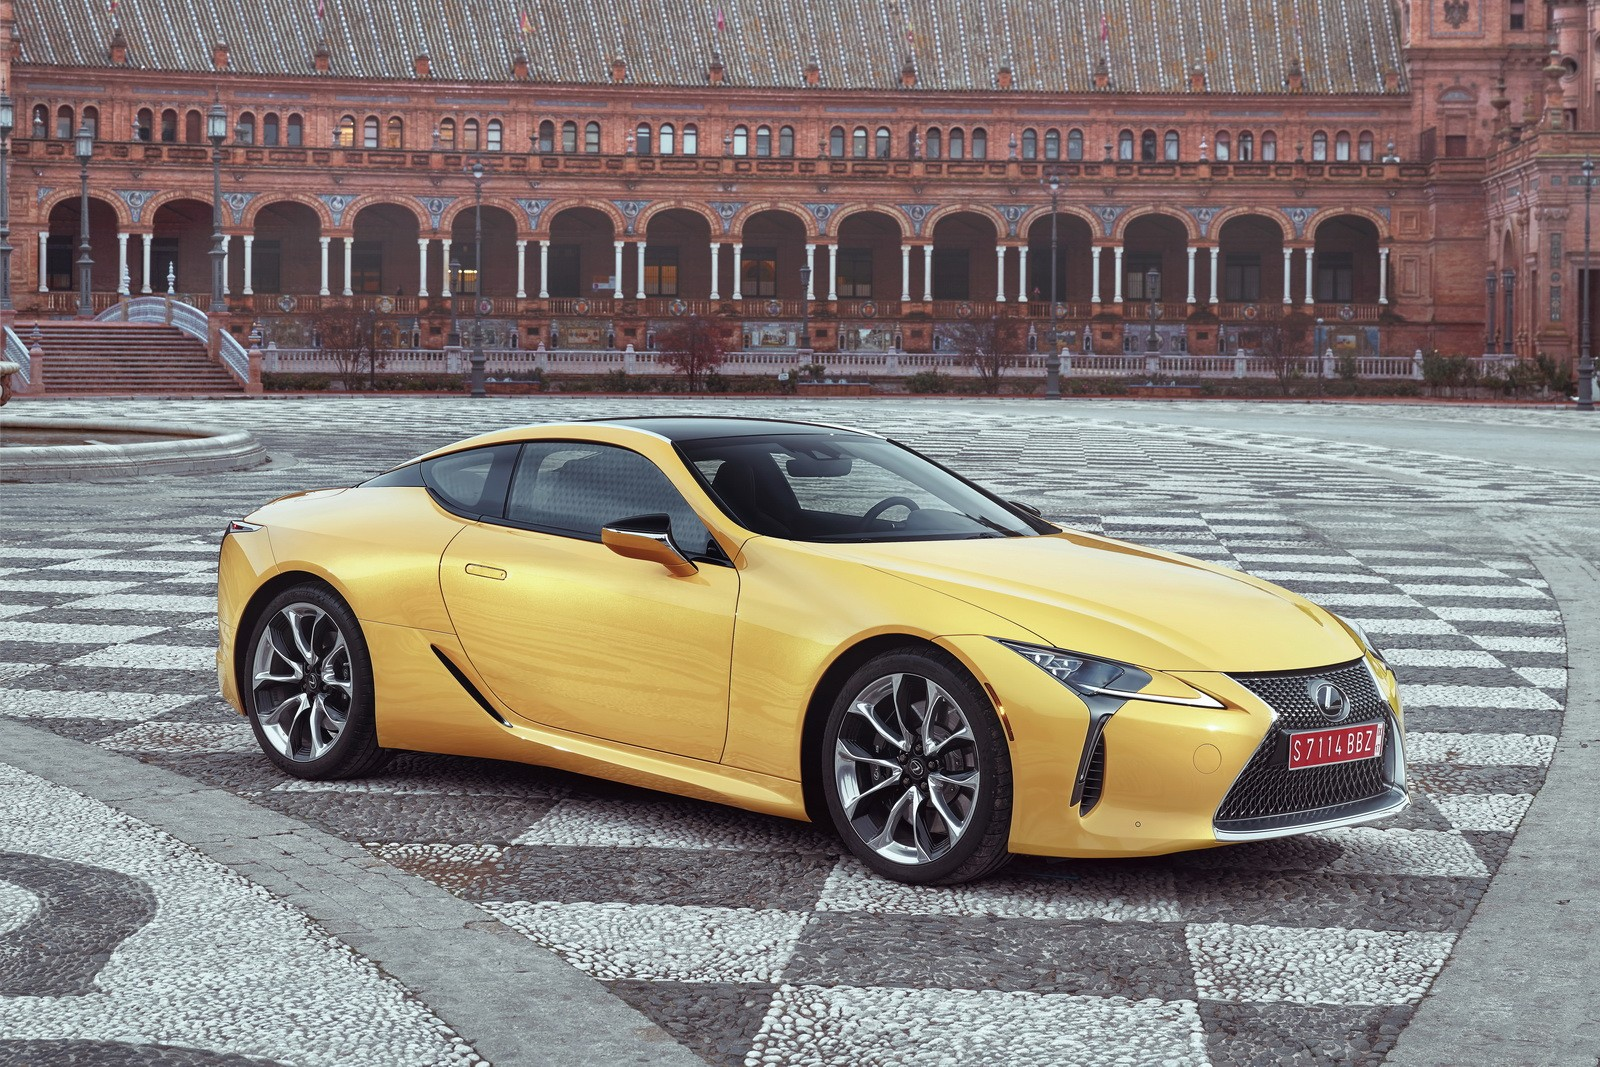 2019 Lexus Lc 500 Preview >> The Plot Thickens Possible 2019 Lexus Lc F Test Mule Spied In